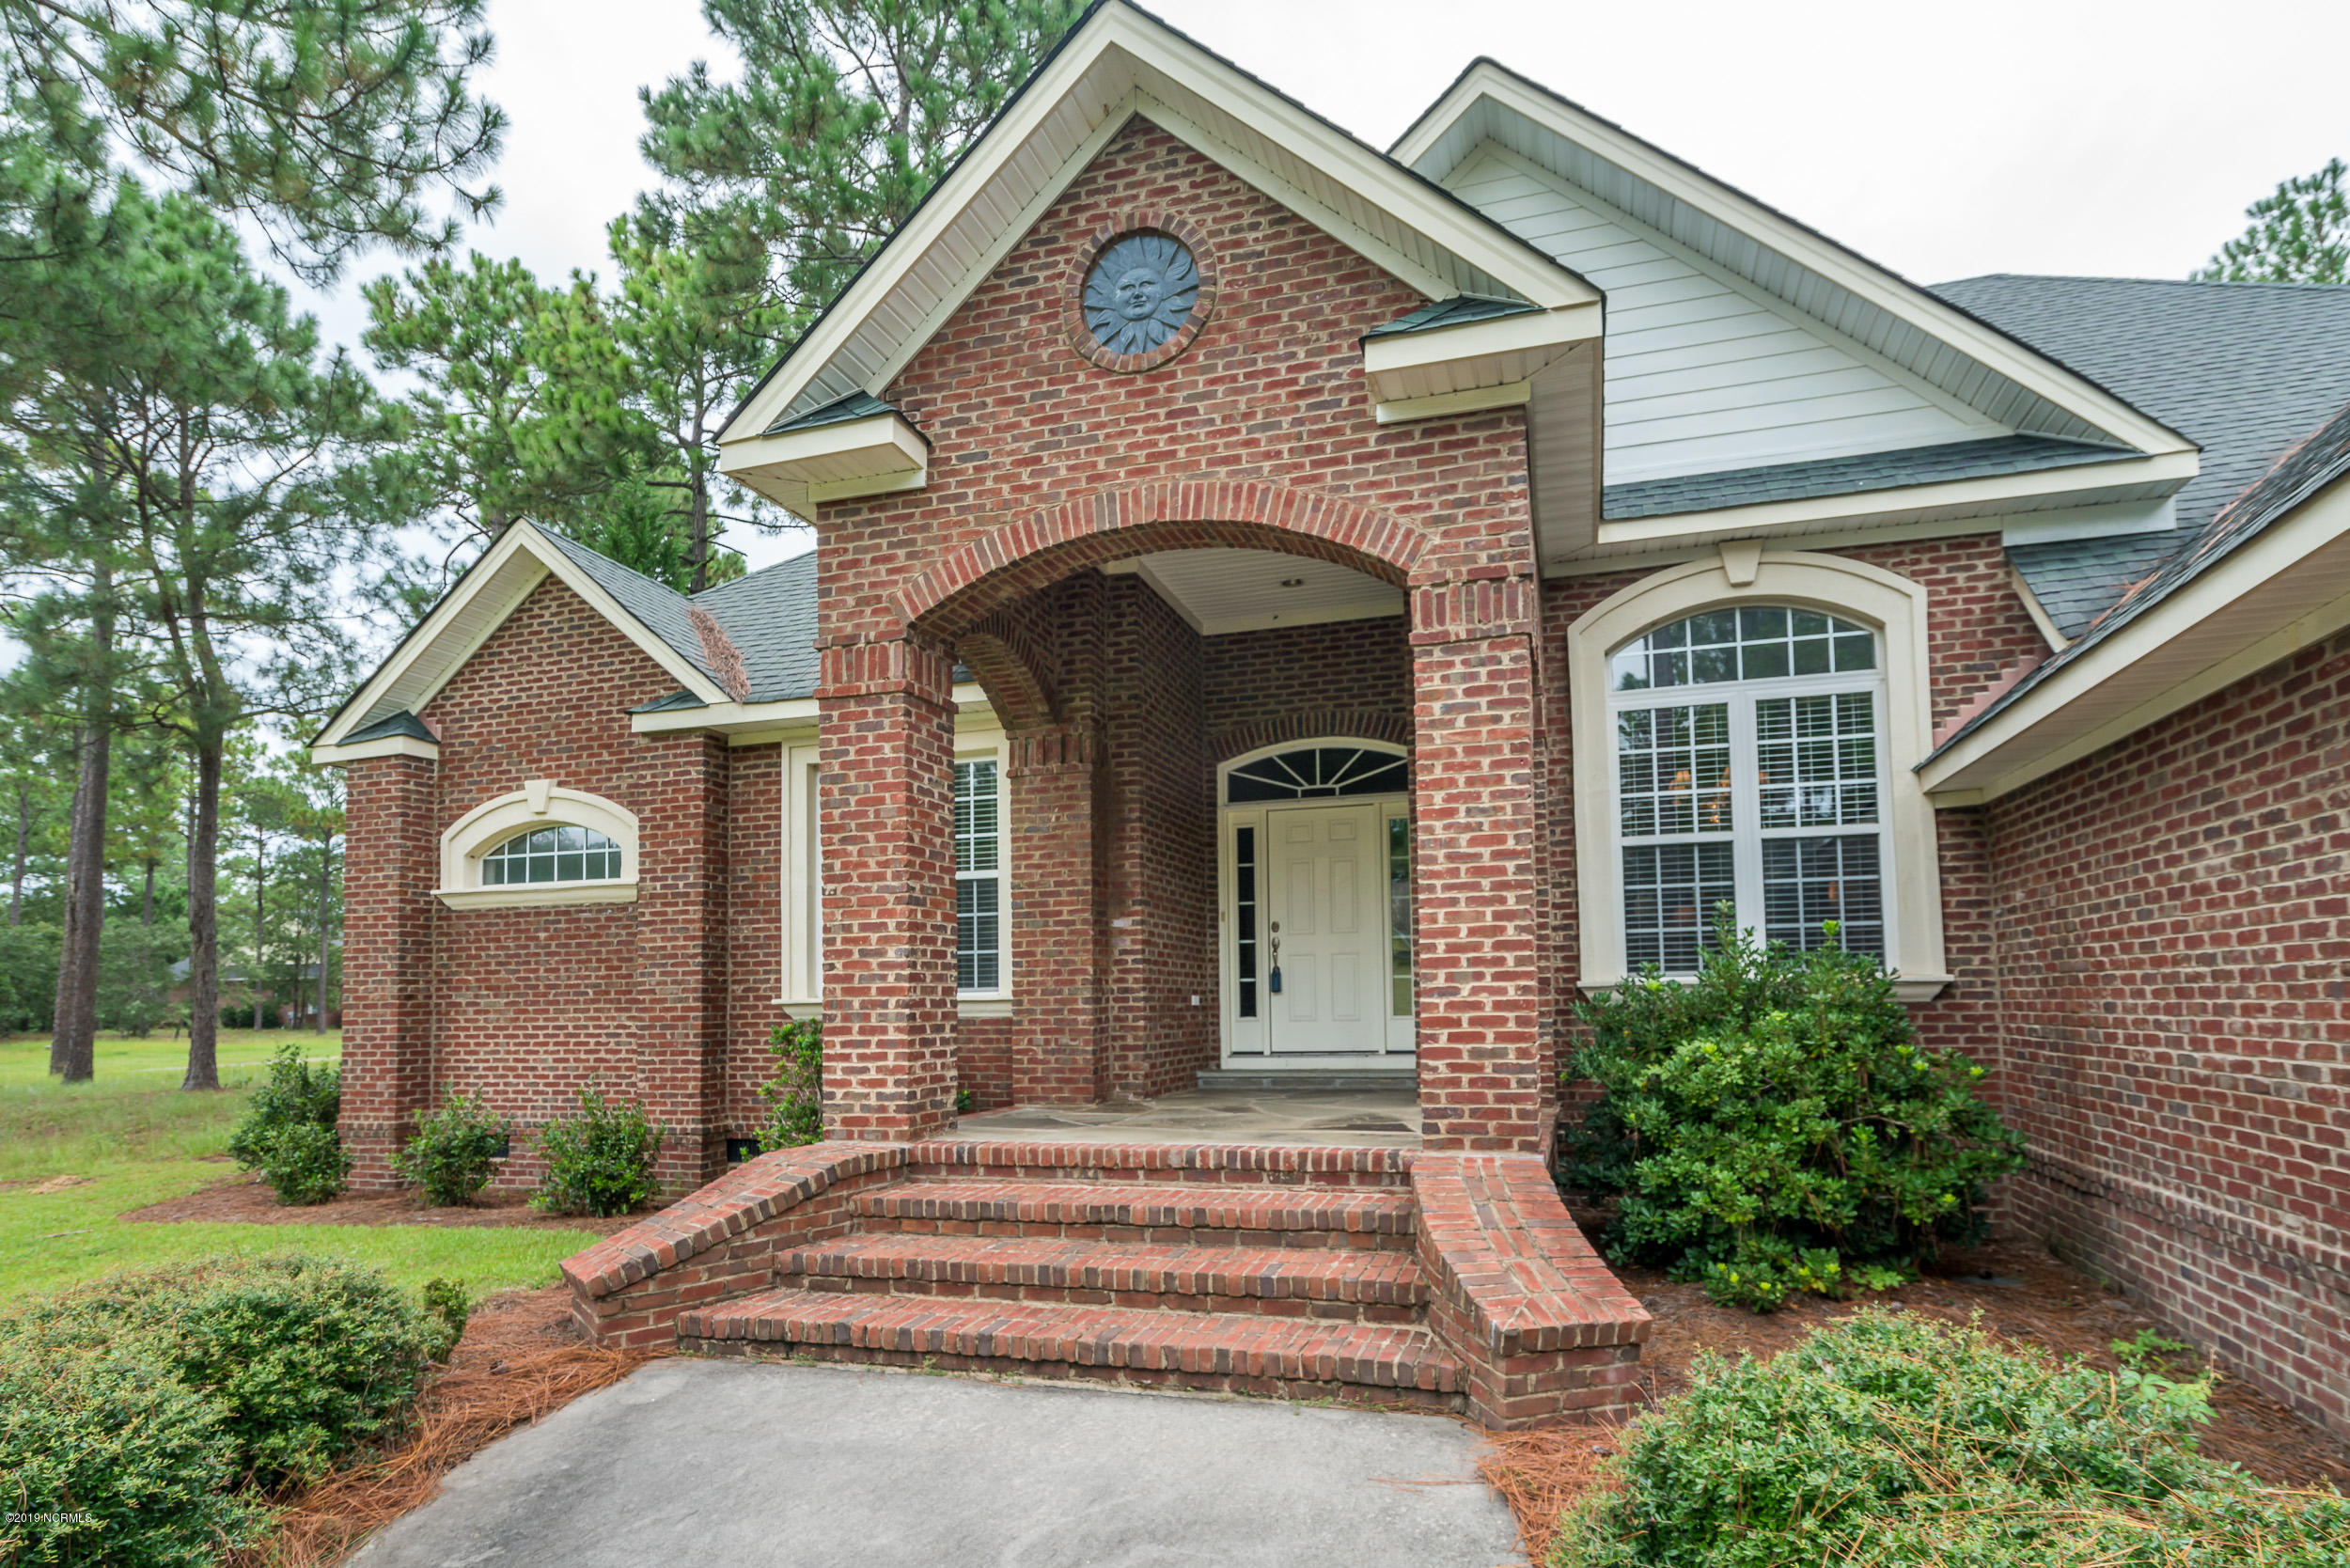 1704 Merriweather Lane Bolivia, NC 28422